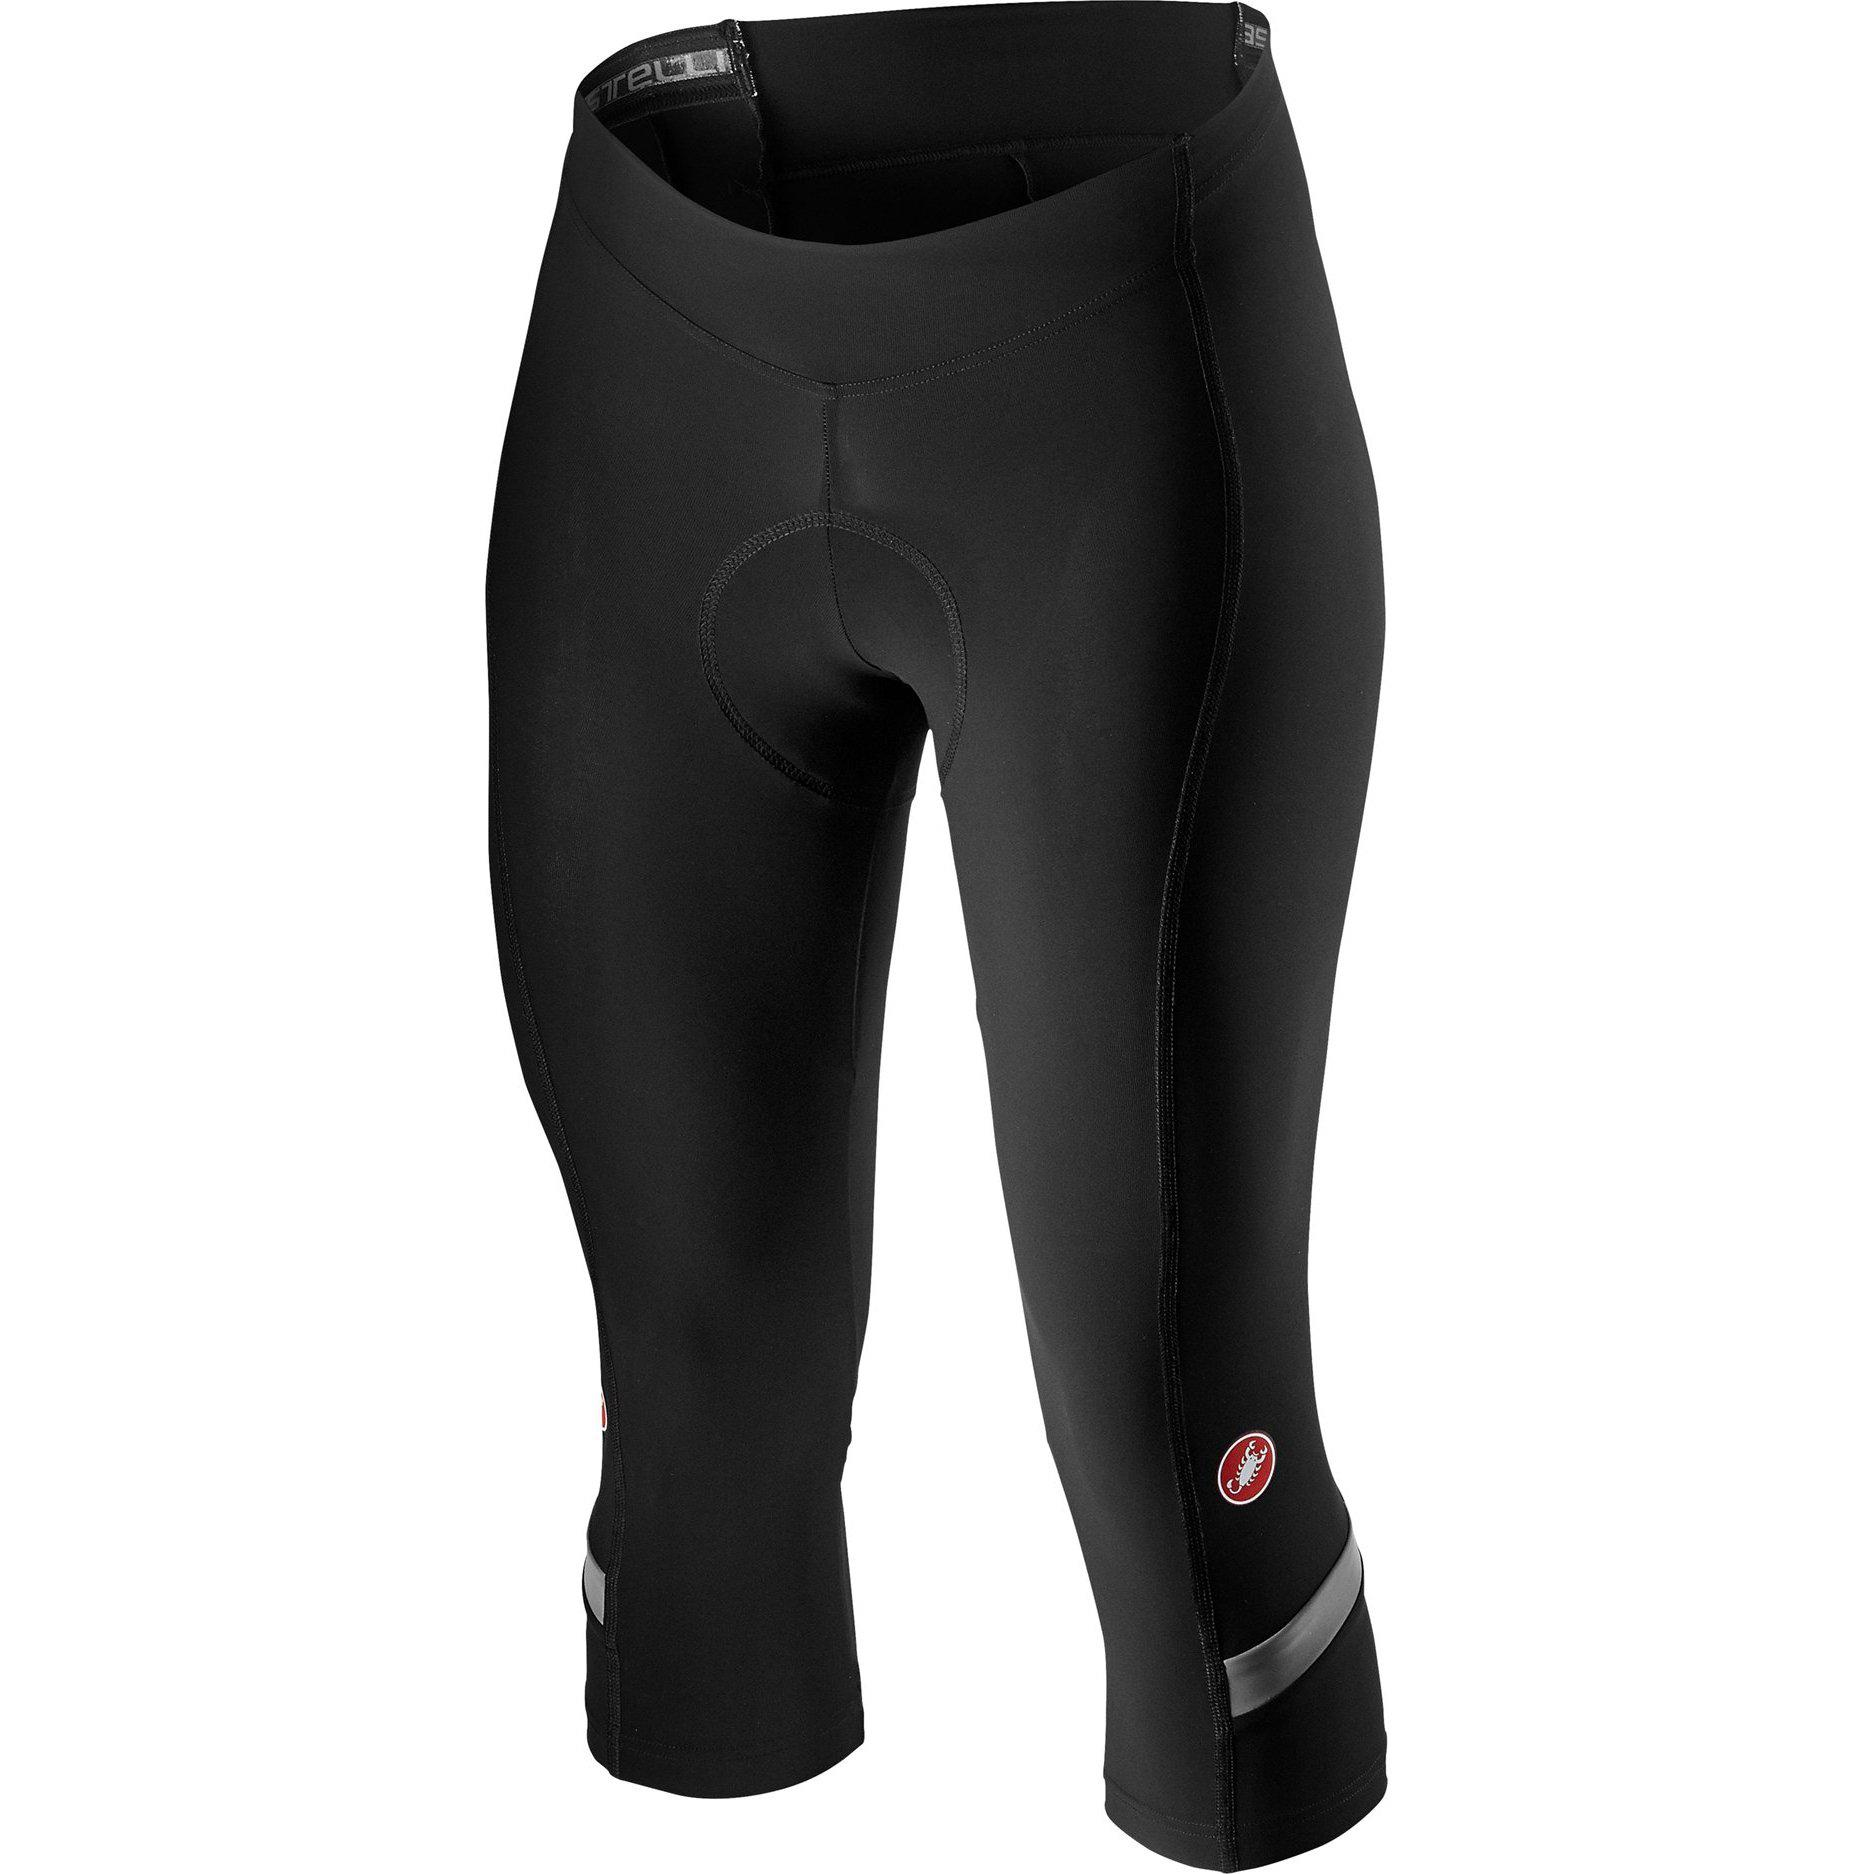 Castelli-Castelli Velocissima 2 Knicker-Black-XS-CS200610101-saddleback-elite-performance-cycling